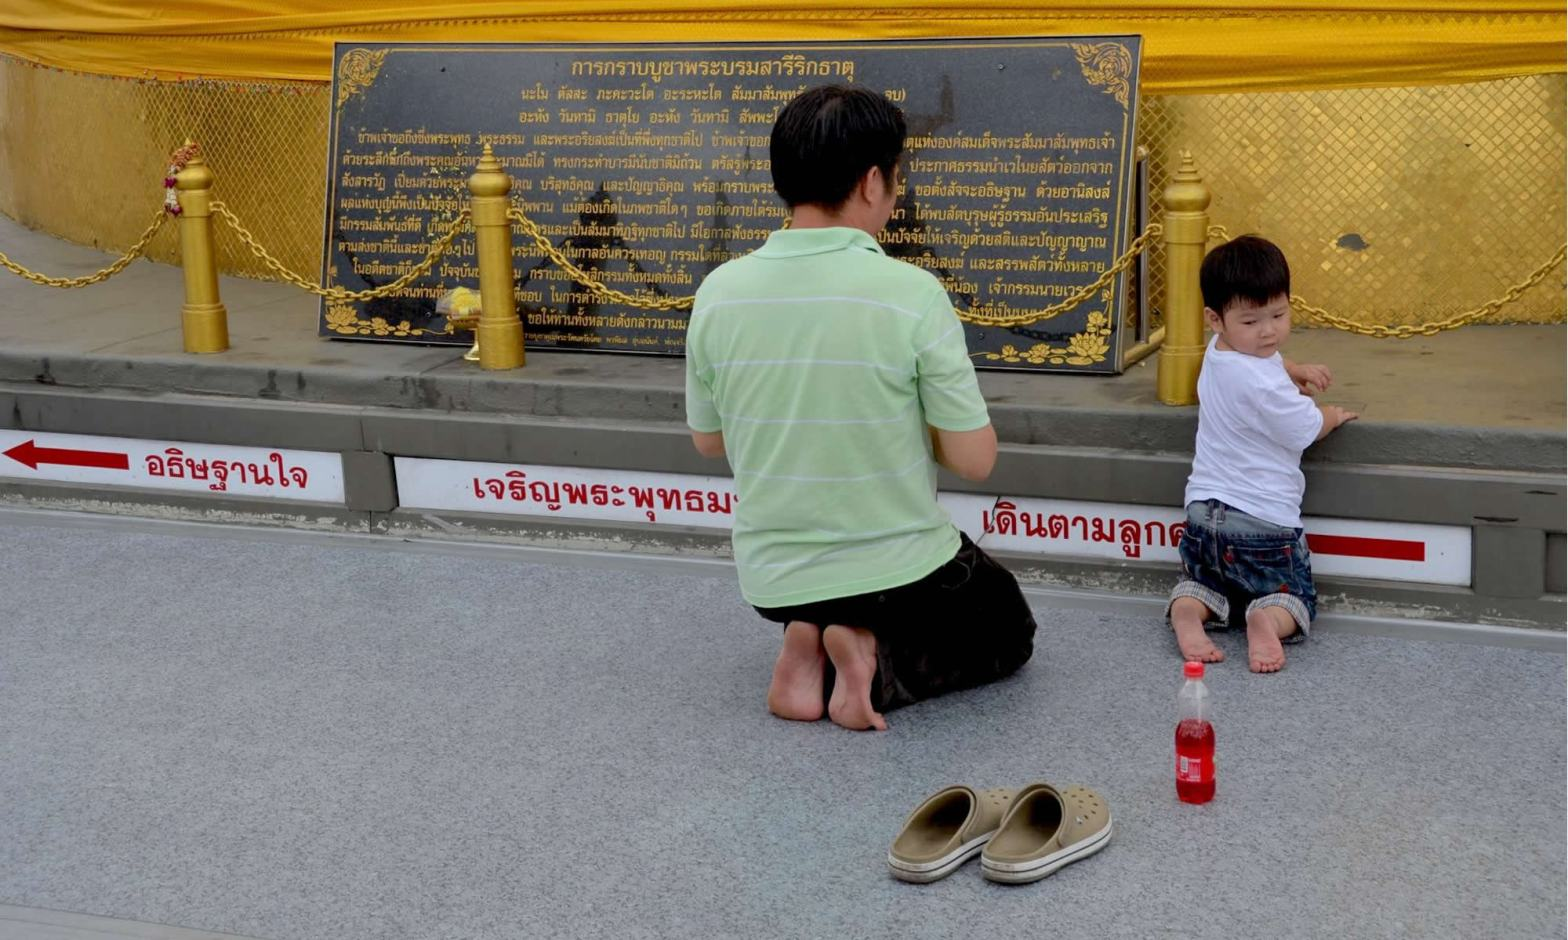 As the adult next to him prays at Bangkok's Golden Mount, a young boy is distracted by a bottle of soda.